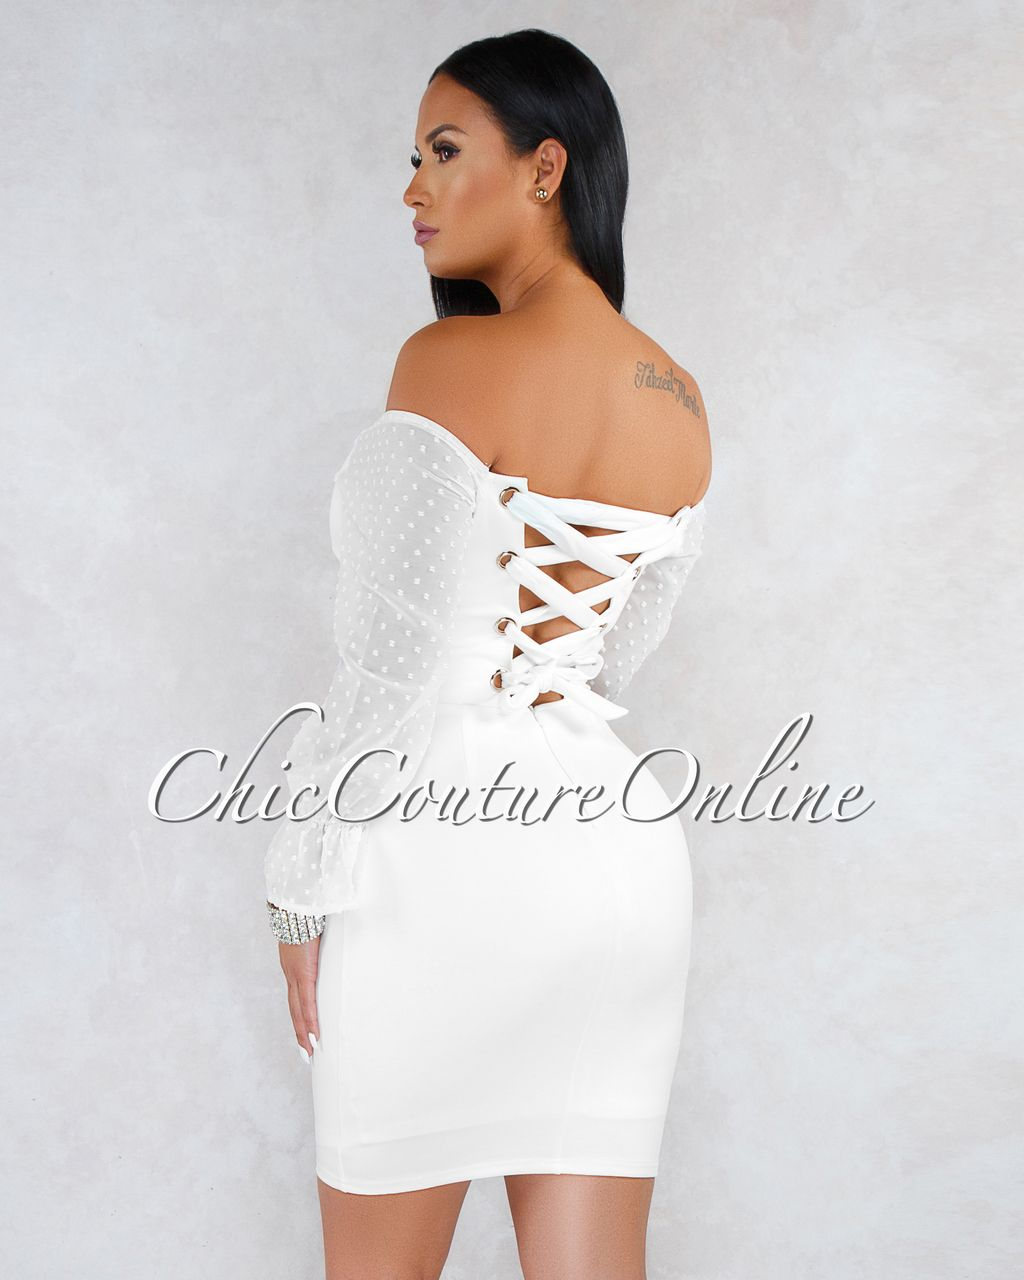 Pin On White Hot Chic Couture Online [ 1280 x 1024 Pixel ]